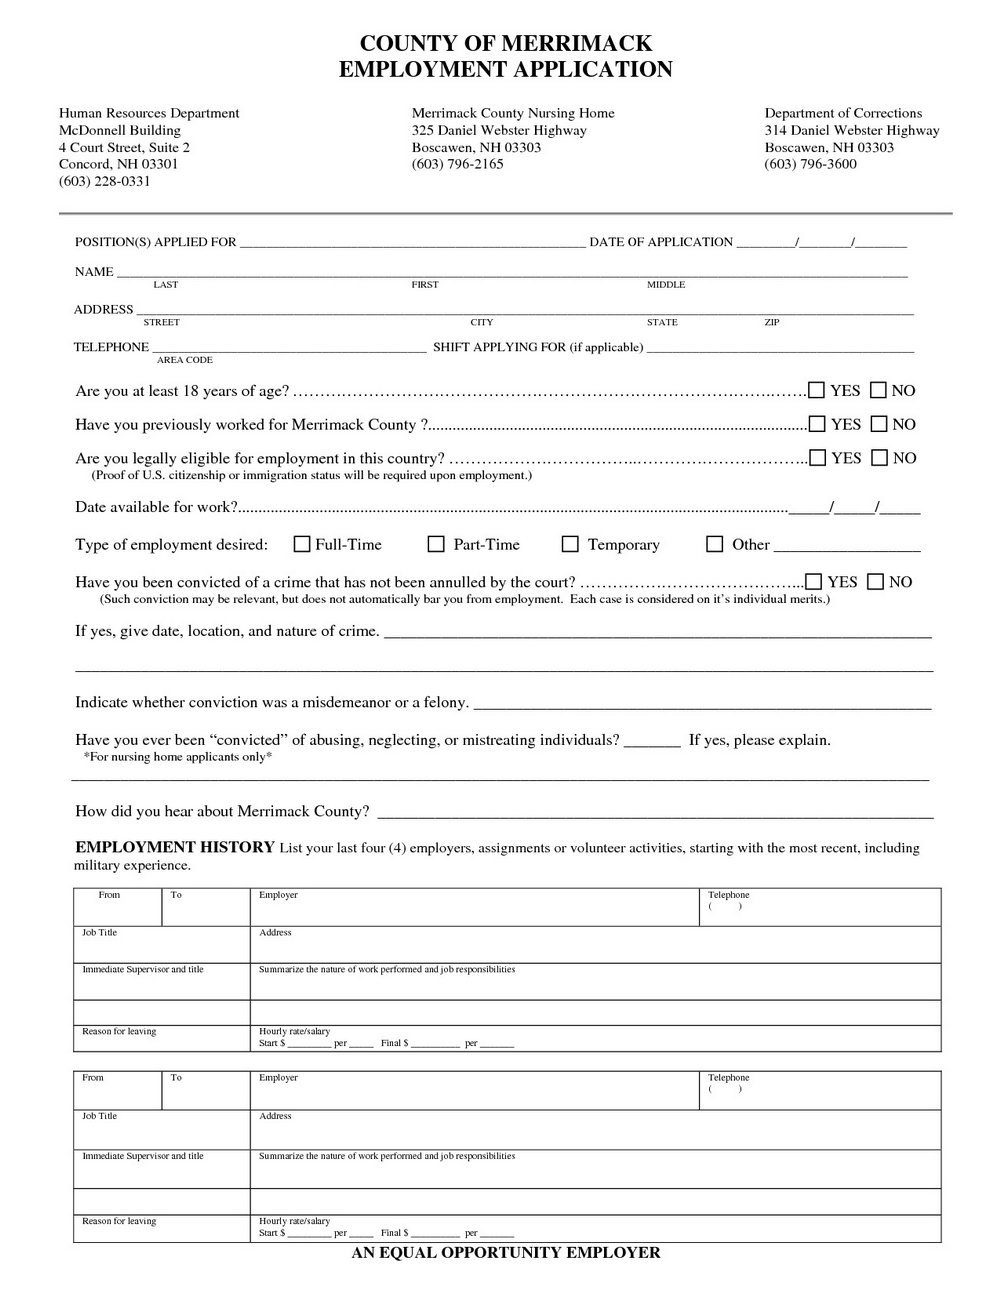 Nursing Job Application Form